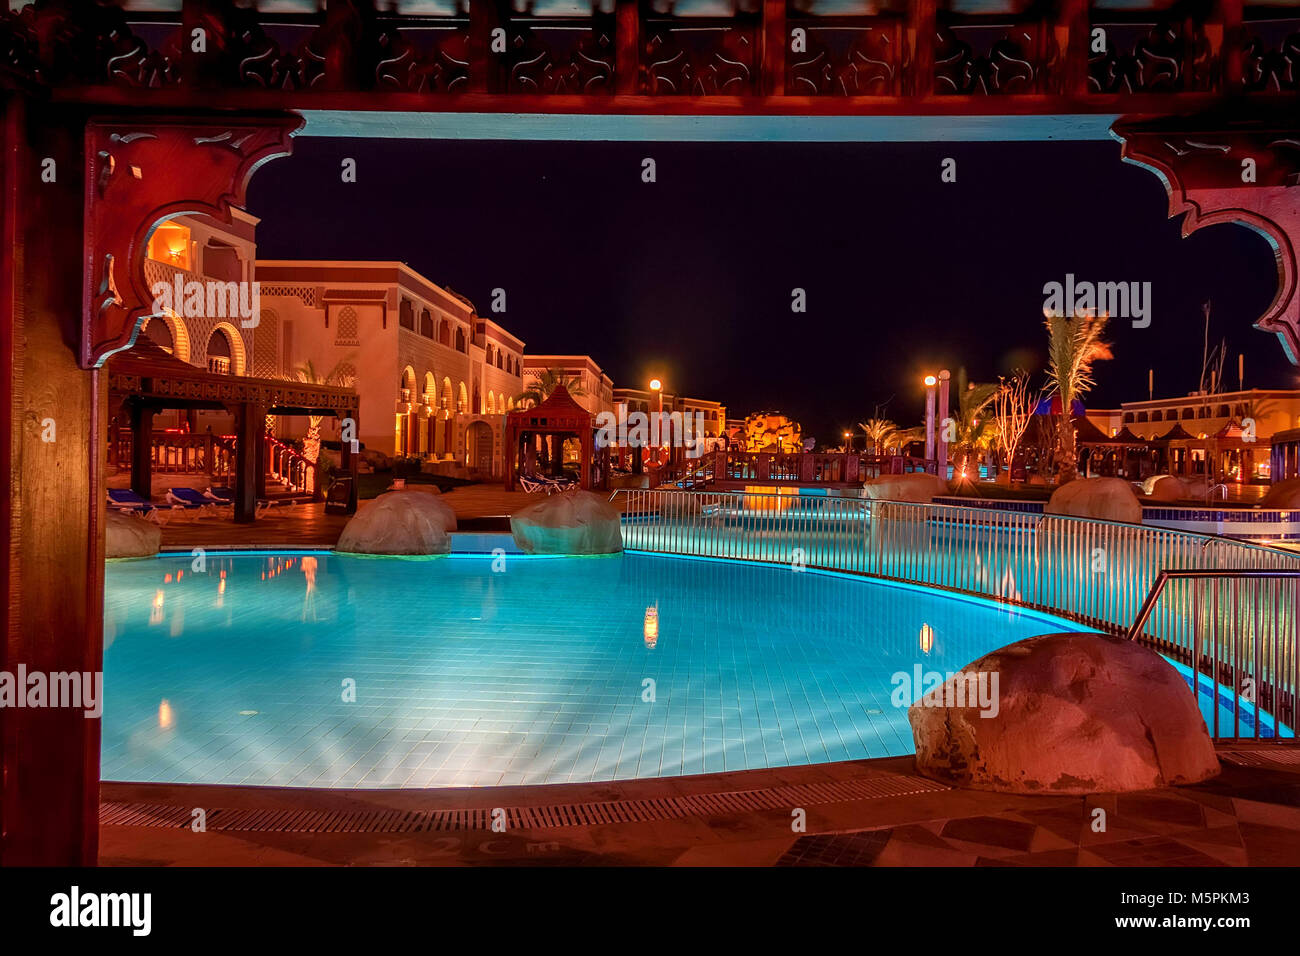 HURGHADA, EGYPT- FEBRUARY 22, 2010: Night view of pool in luxury resort in Egypt - Stock Image